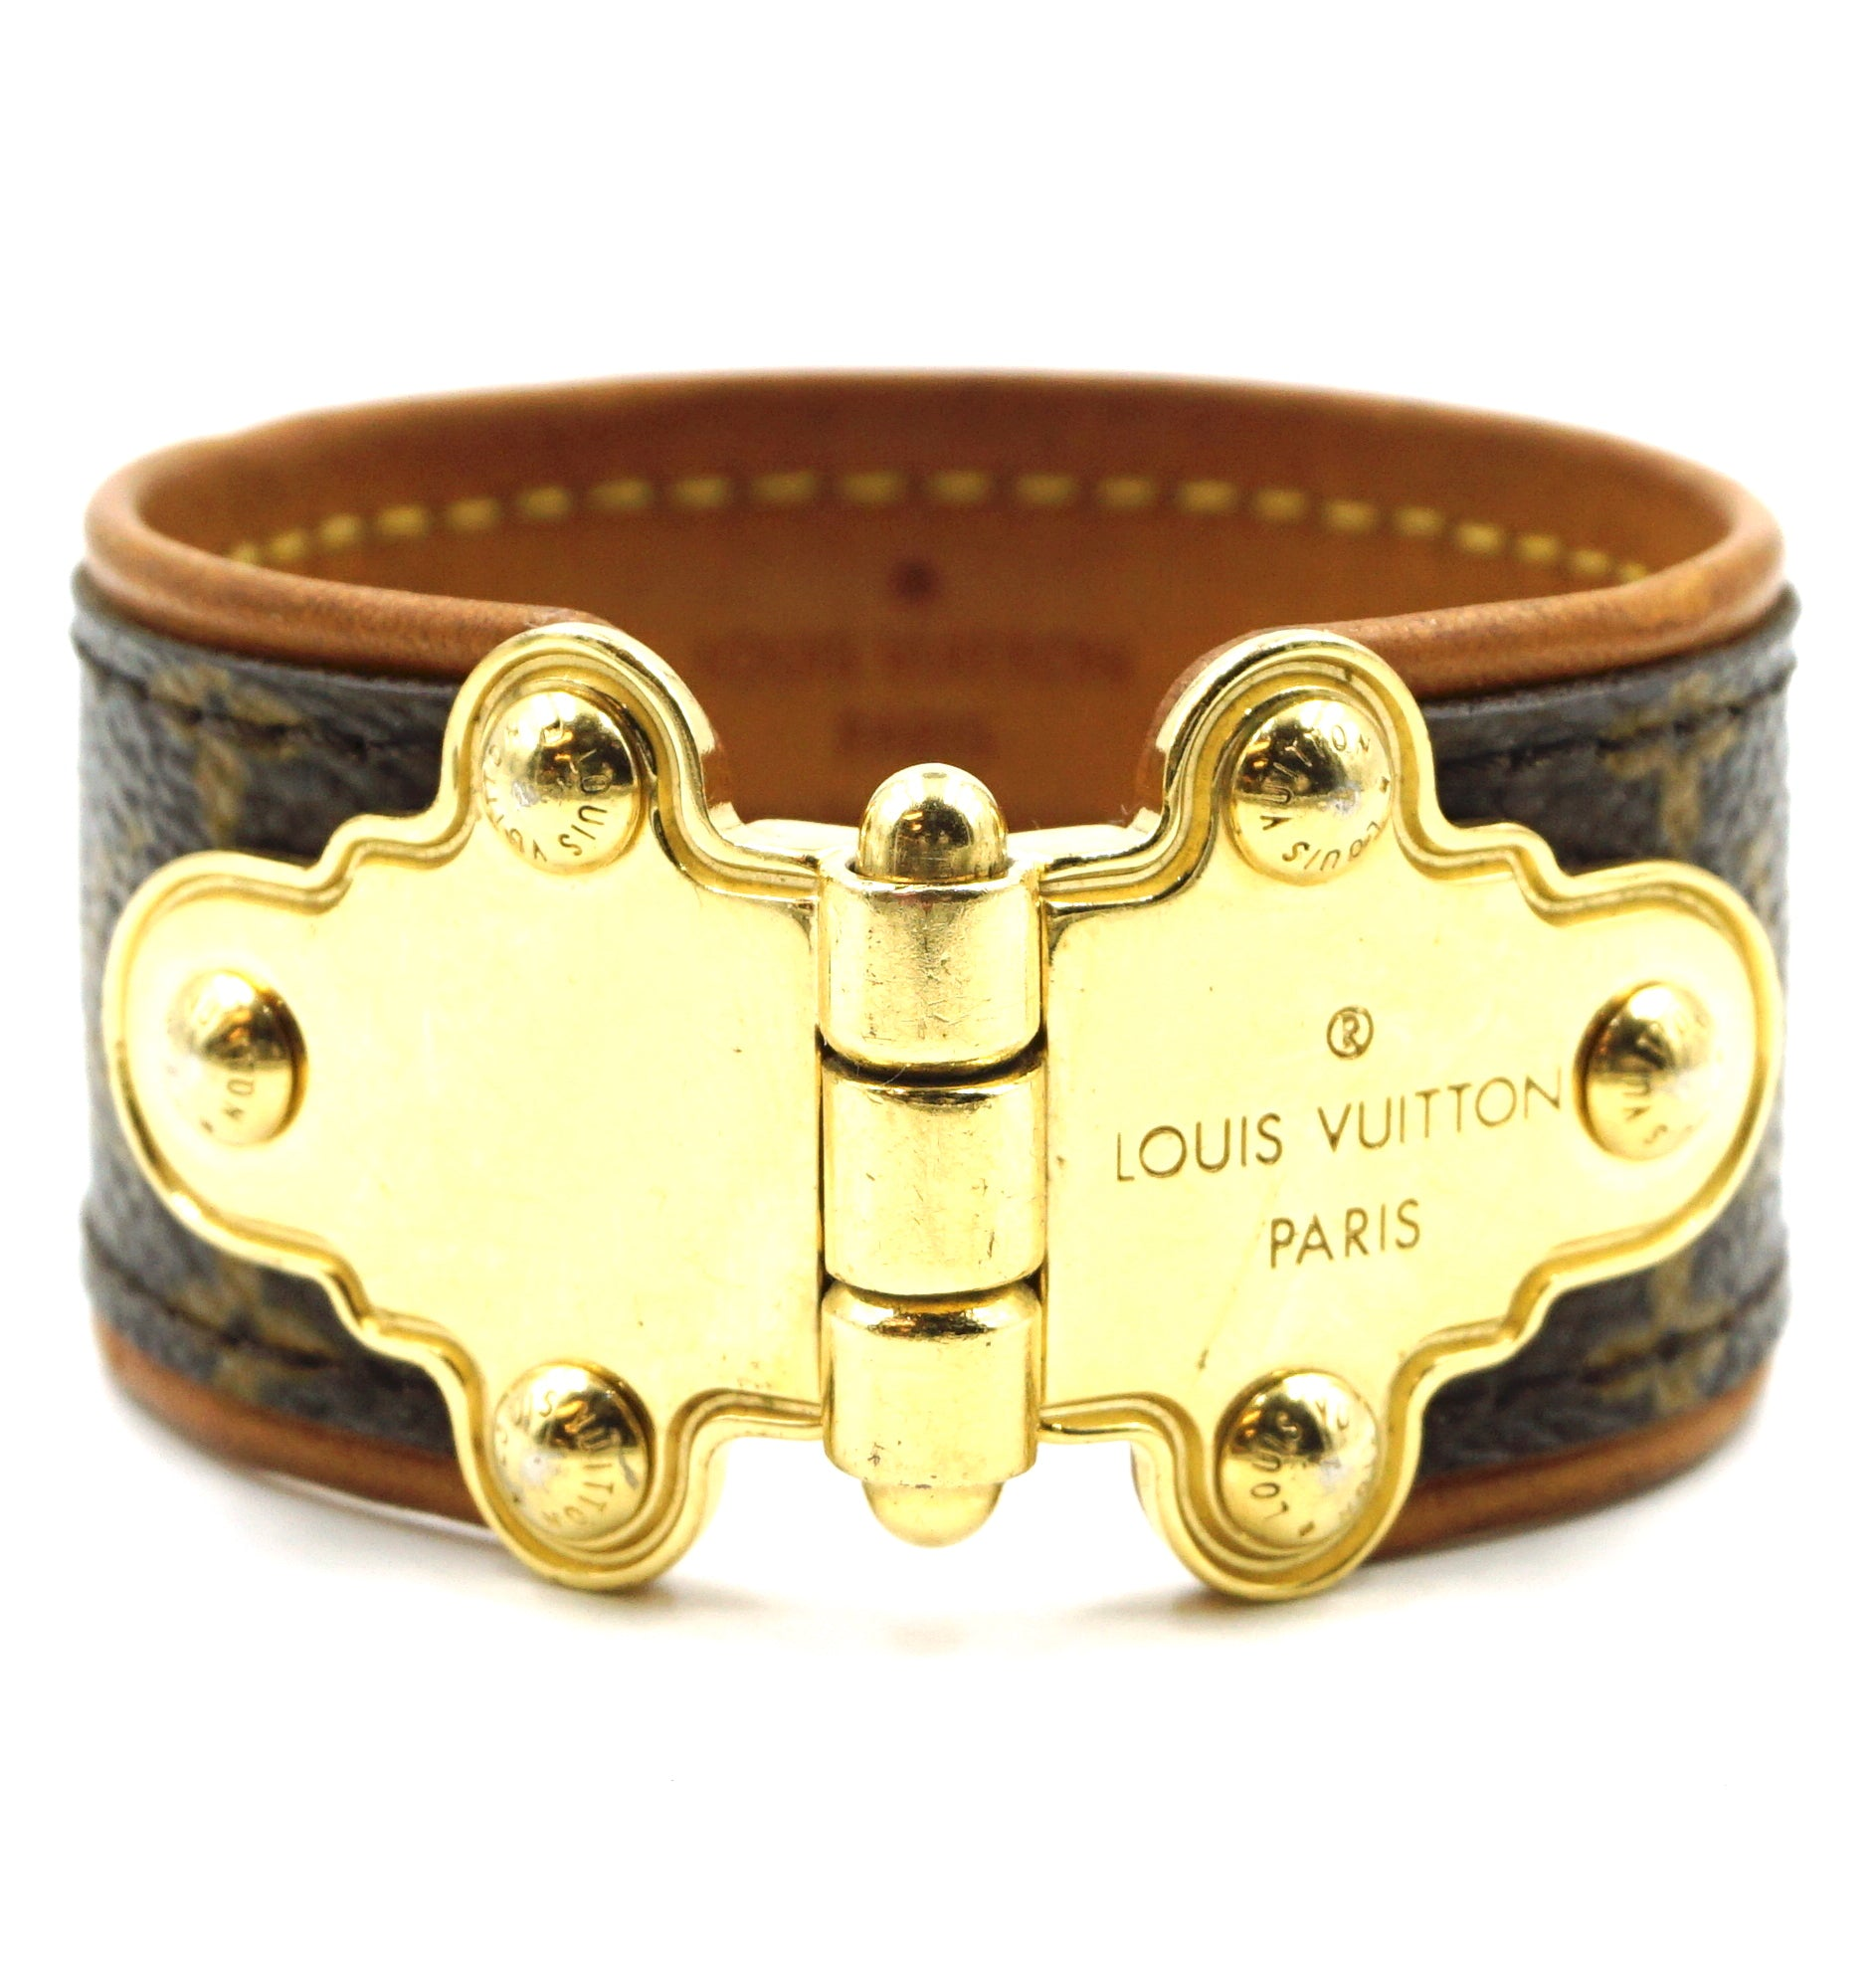 Louis Vuitton Monogram Save It Cuff Bracelet